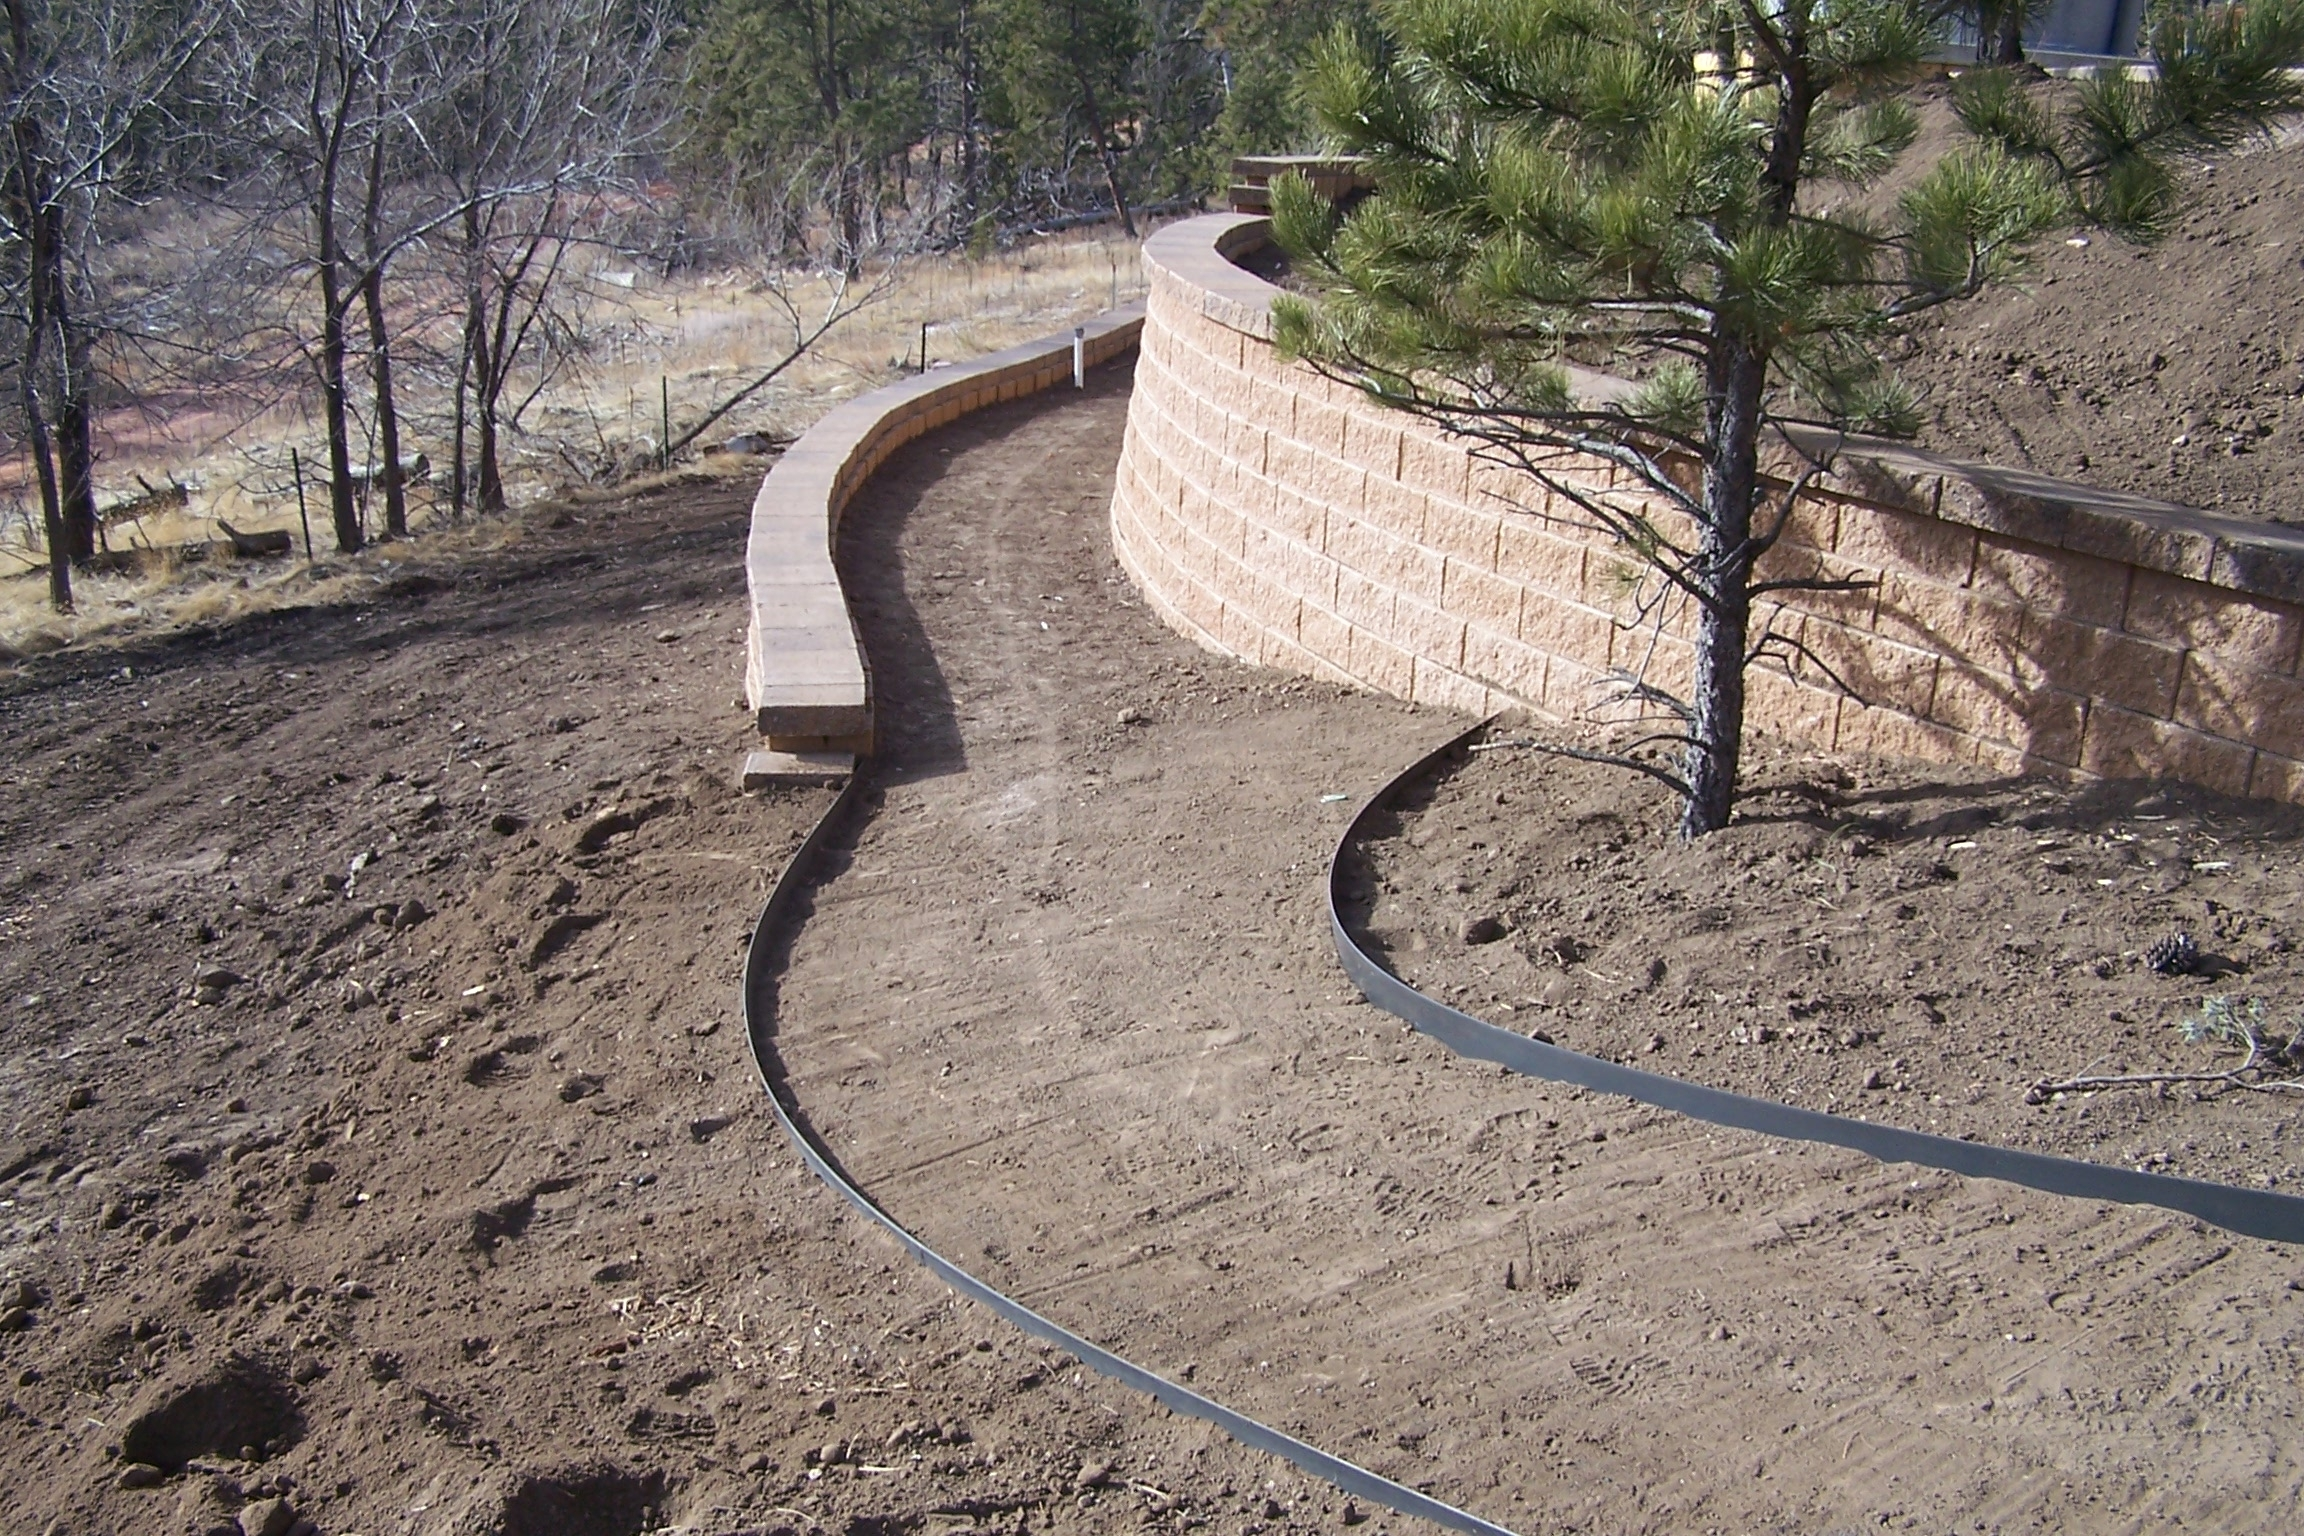 Plastic Pvc Steel Or Aluminum Landscape Edging How To Install Intended For Landscape Concrete Edging Installation Landscape Concrete Edging Installation